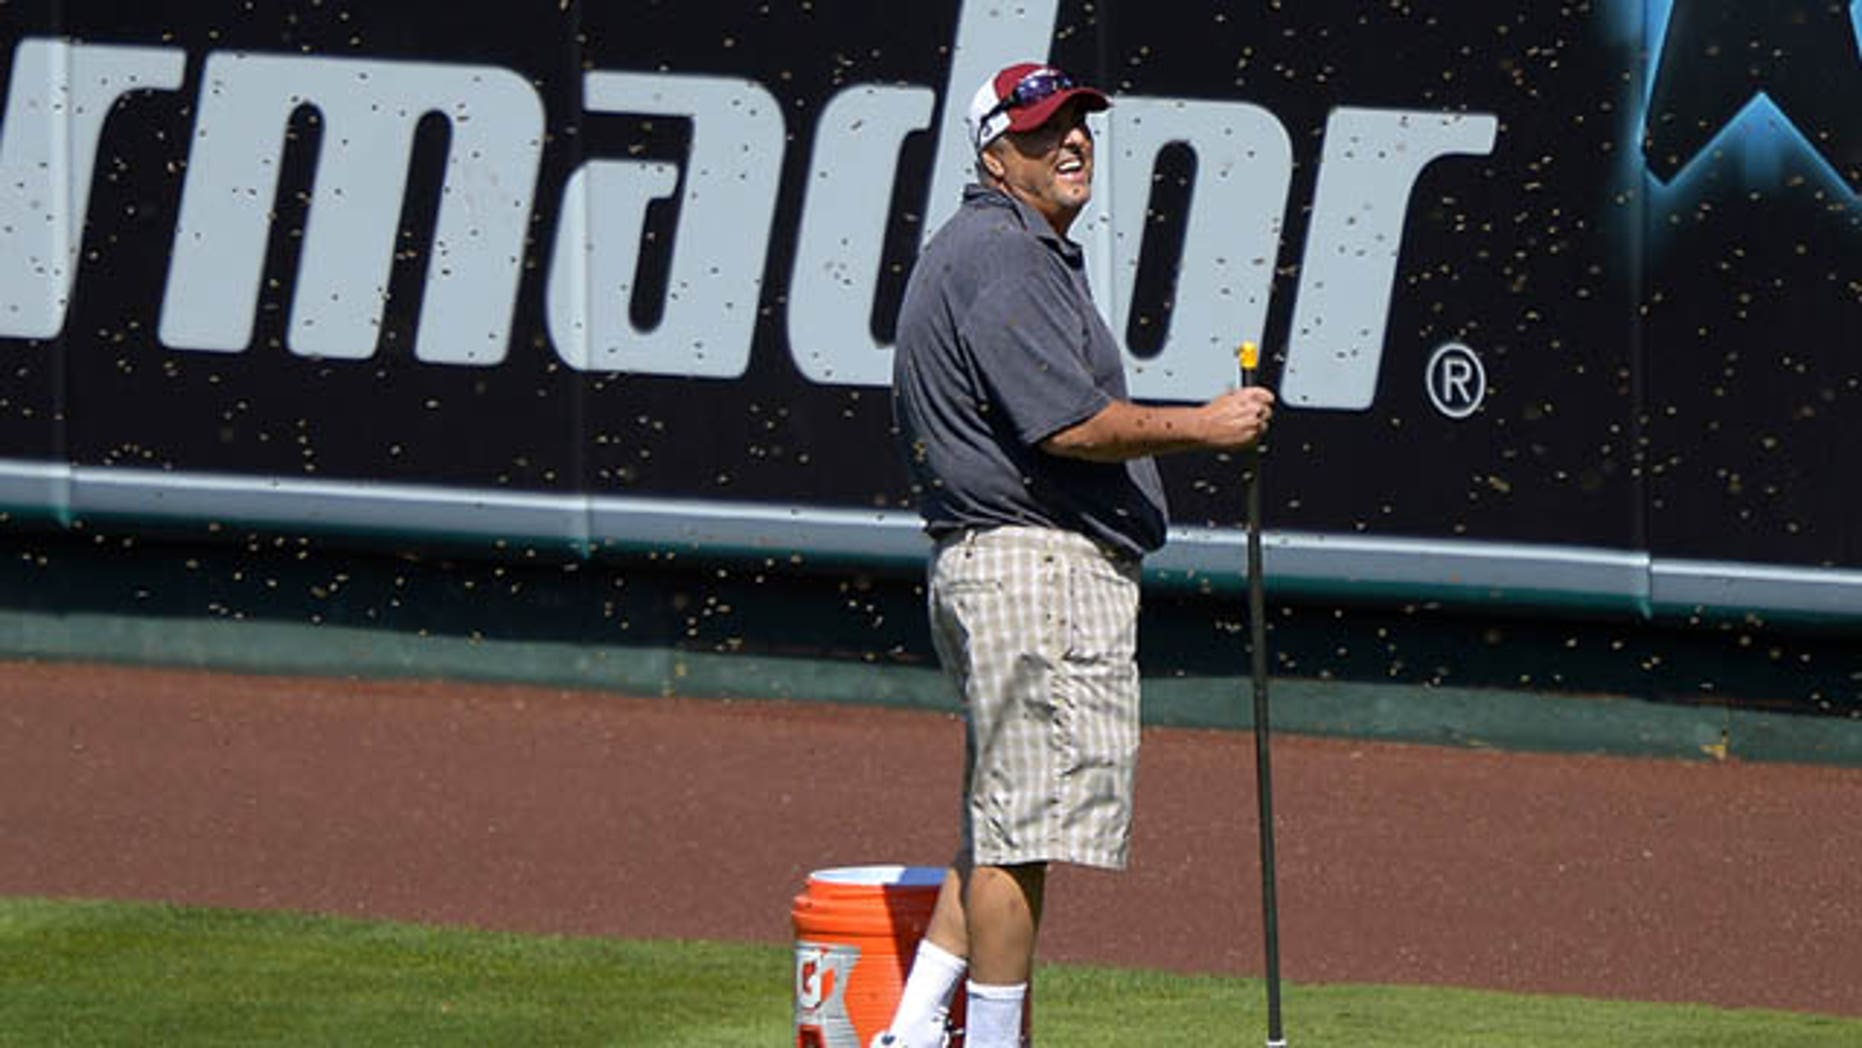 September 22, 2013: Apiarist John Potom, of Honey Pacifica, deals with a swarm of bees that held up a baseball game between the Los Angeles Angels and the Seattle Mariners for several minutes during the third inning on Sunday in Anaheim, Calif. (AP Photo)